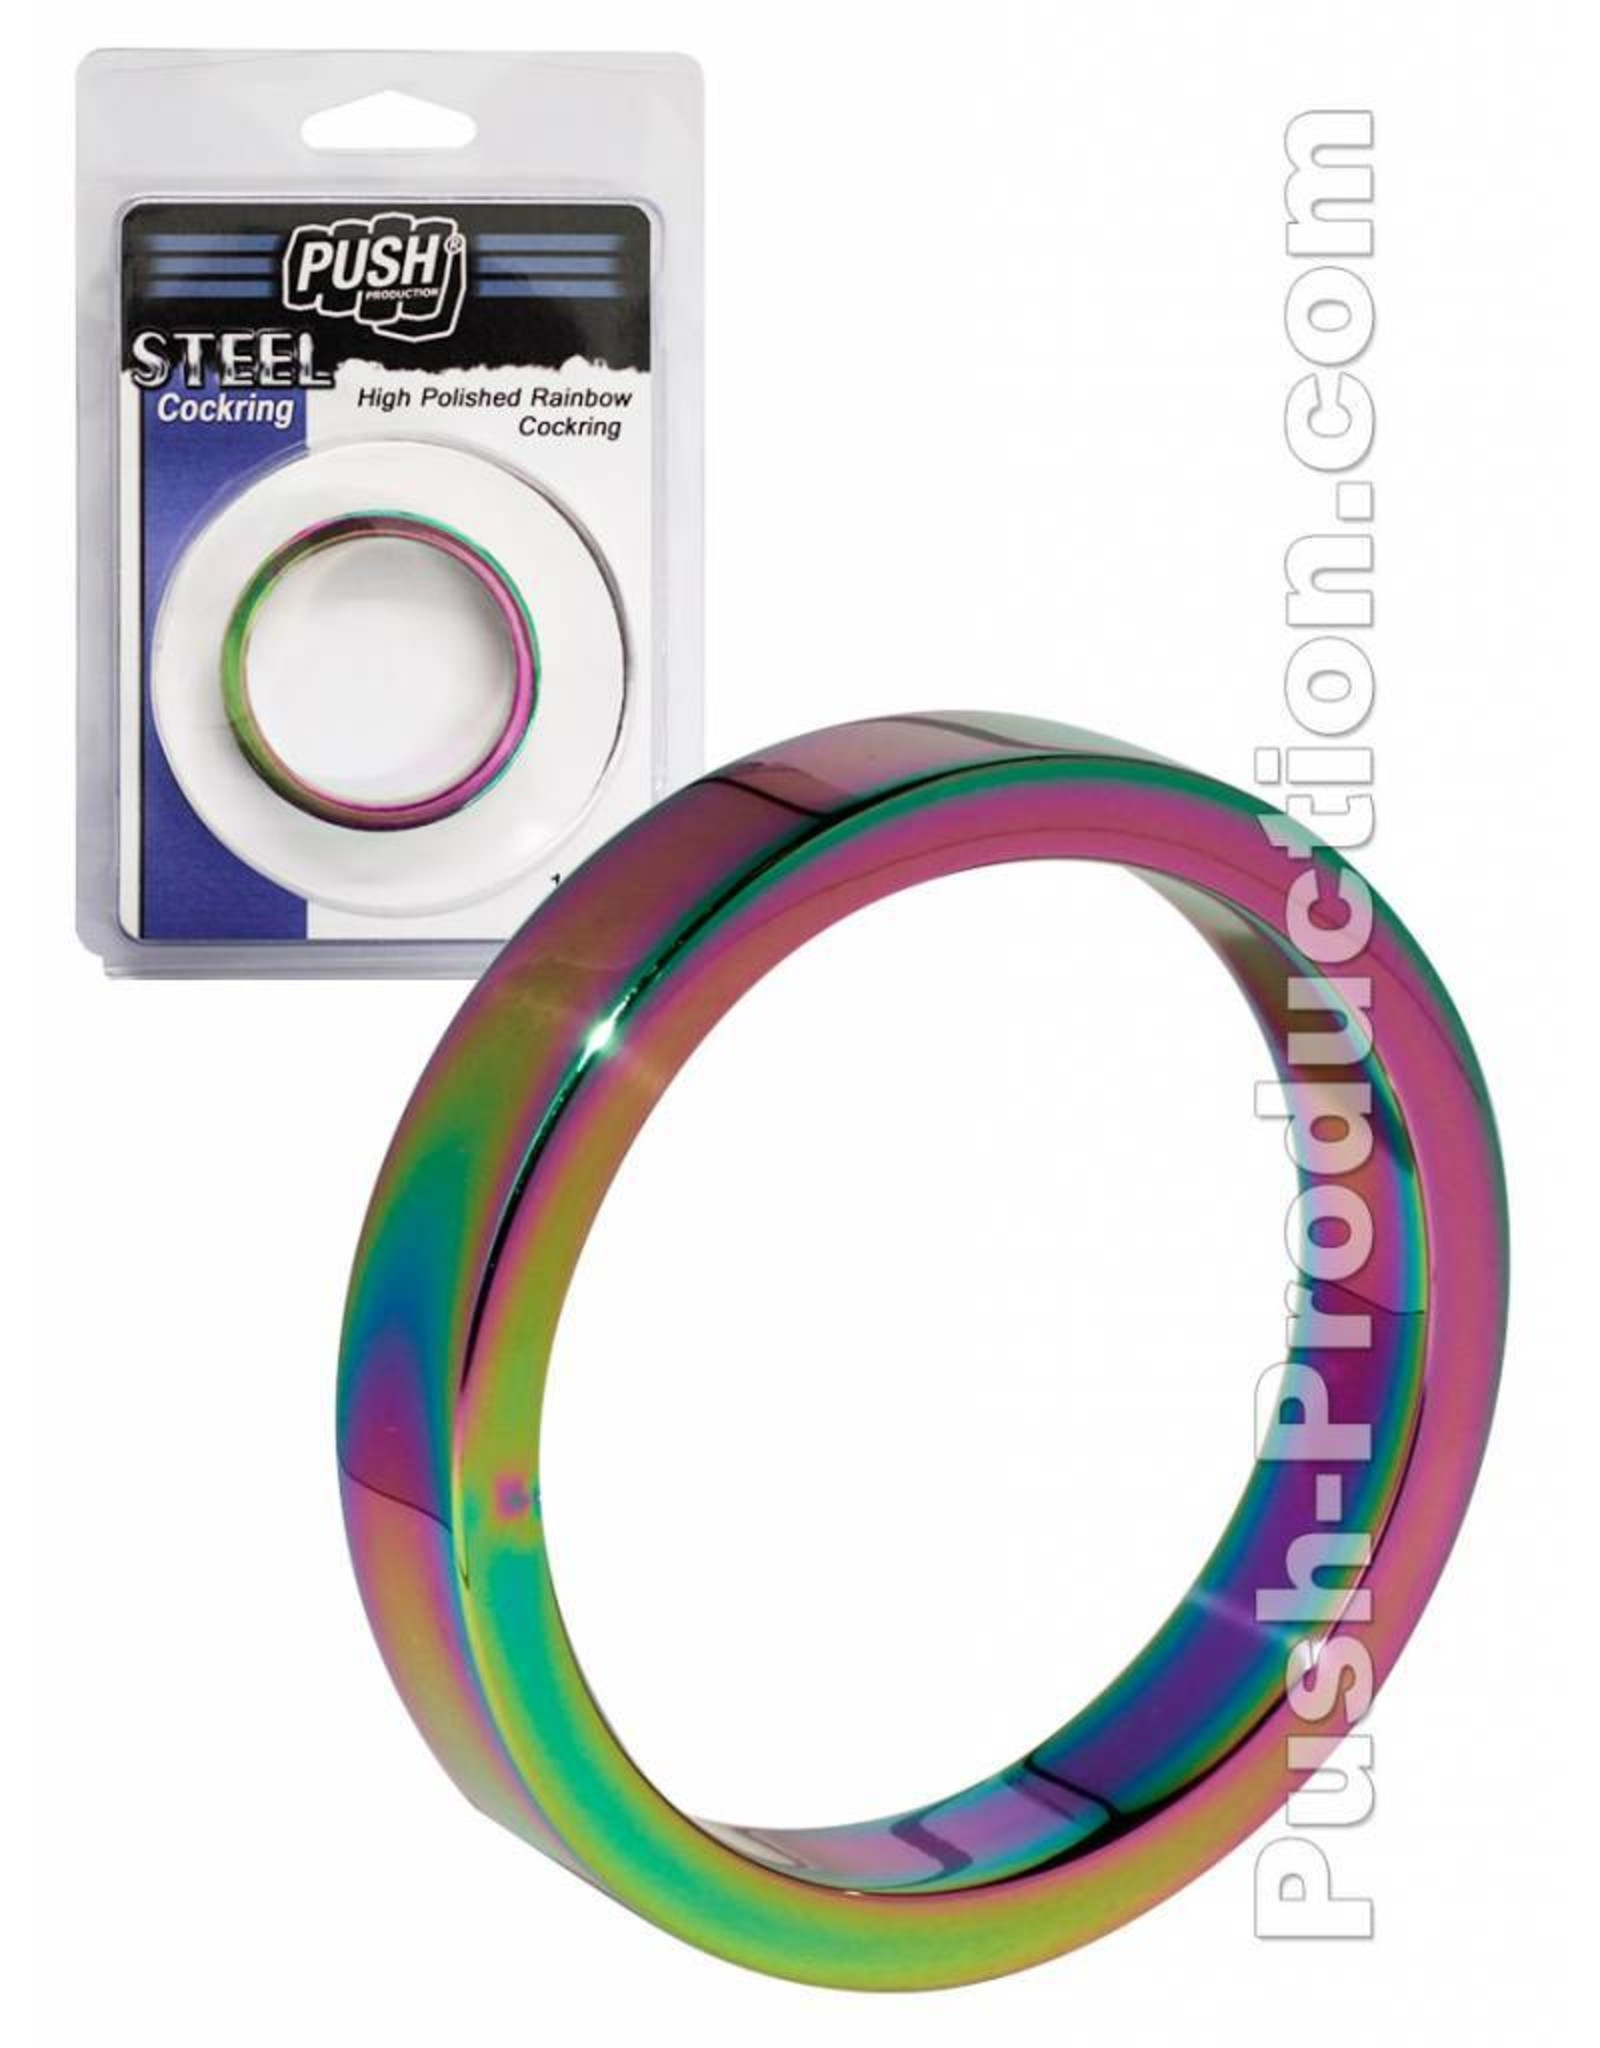 Push Steel - High Polished Rainbow Cockring